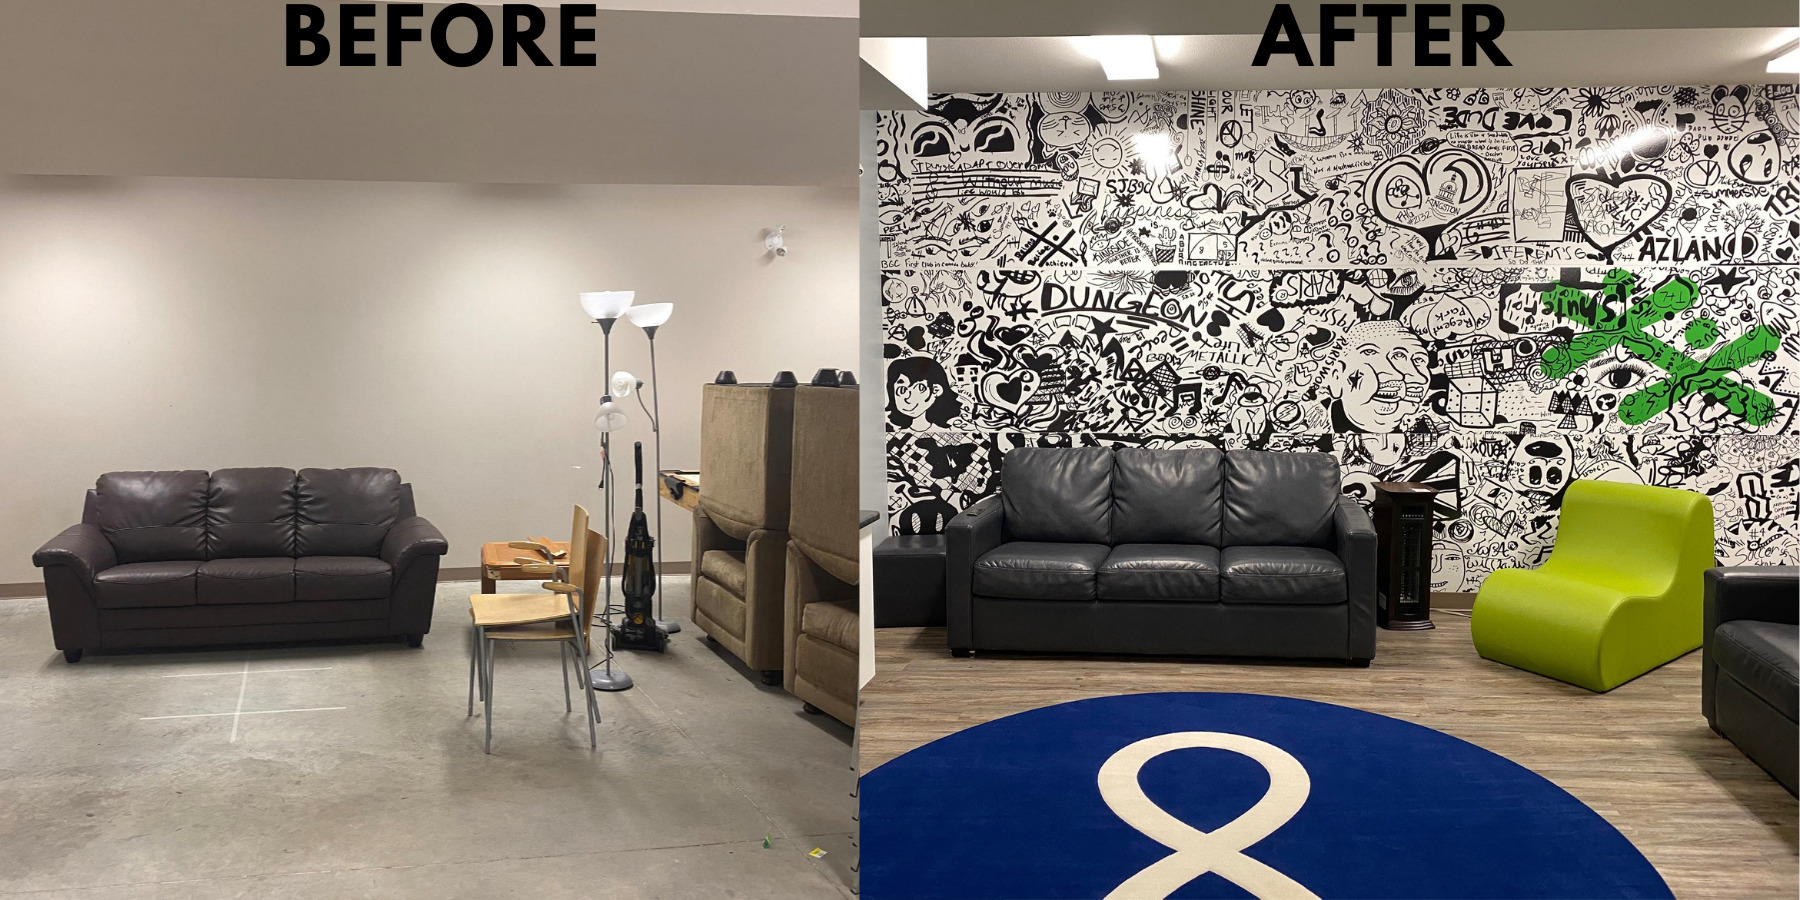 Boys and Girls Clubs of The Battlefords Update Spruce Up Your Story